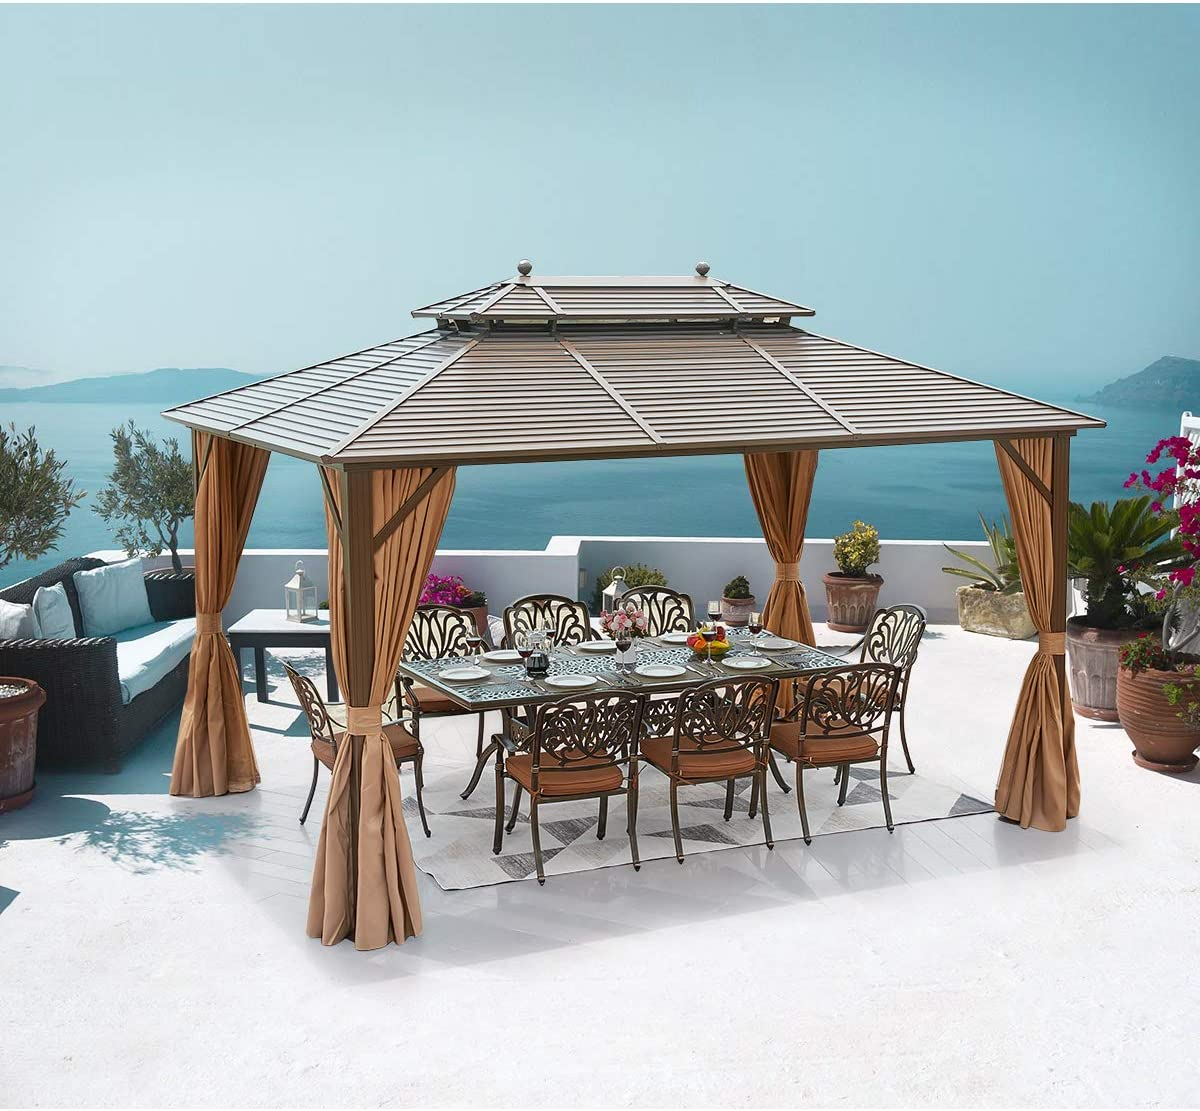 MELLCOM Hardtop Gazebo Galvanized Steel Outdoor Gazebo Canopy 10 13 Double Roof Pergolas Aluminum Frame with Netting and Curtains for Garden,Patio,Lawns,Parties